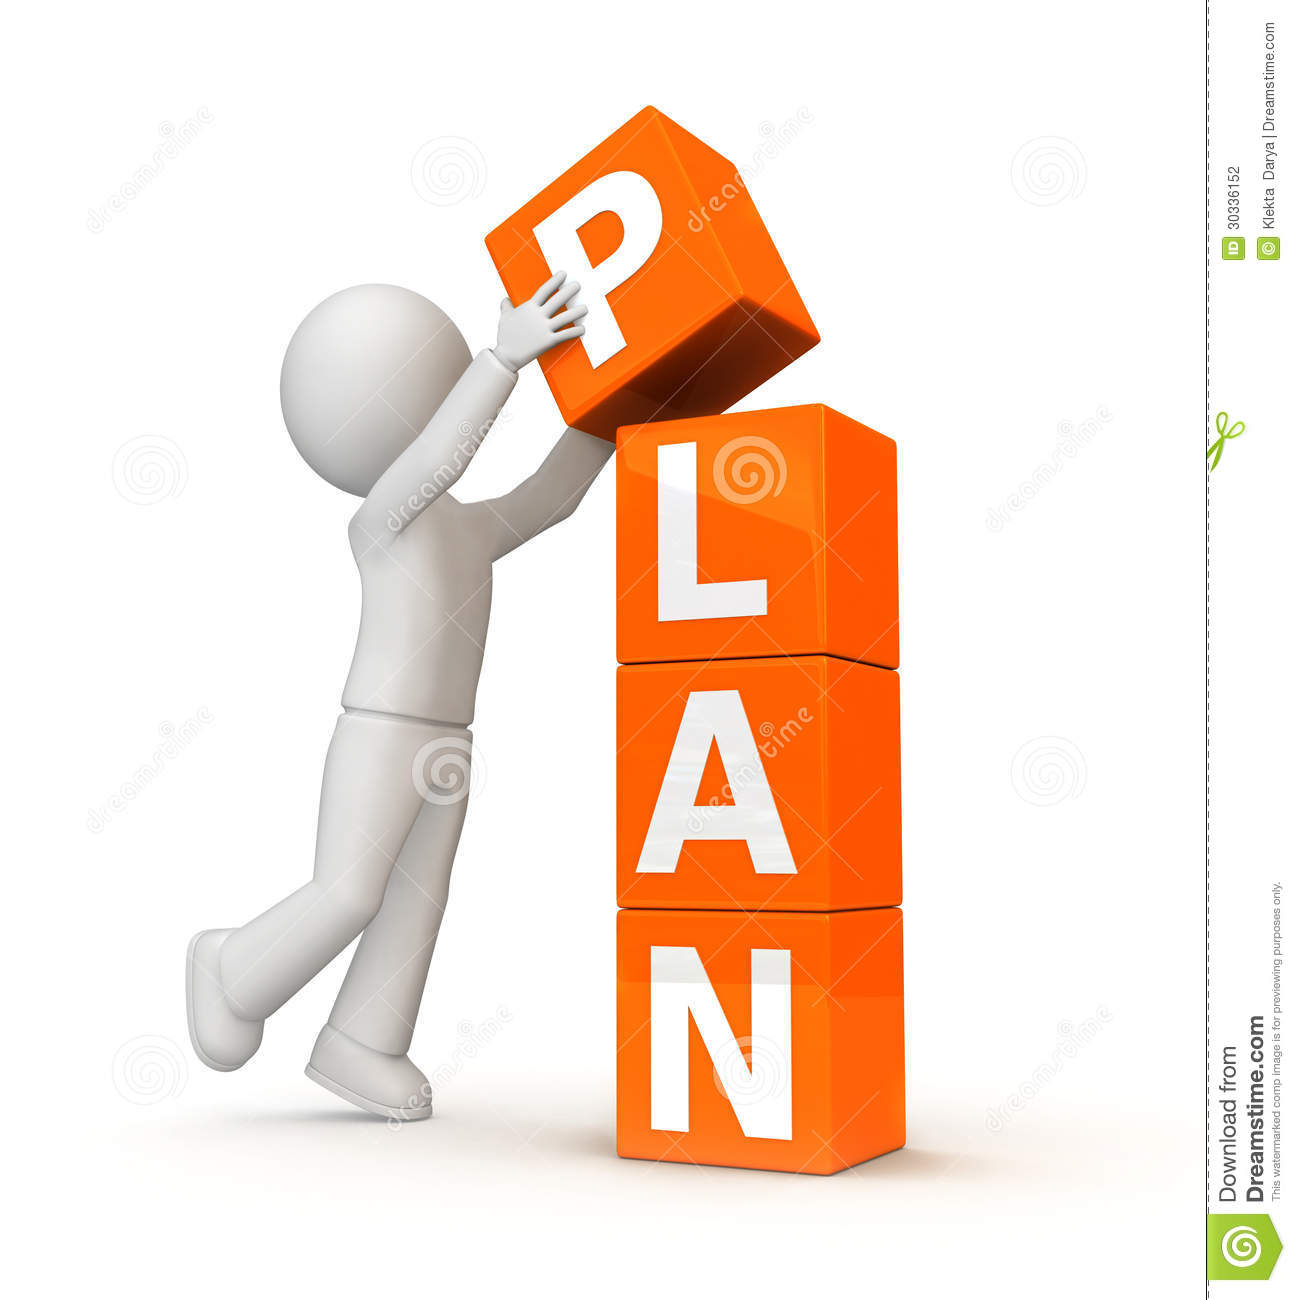 Plan of work clipart